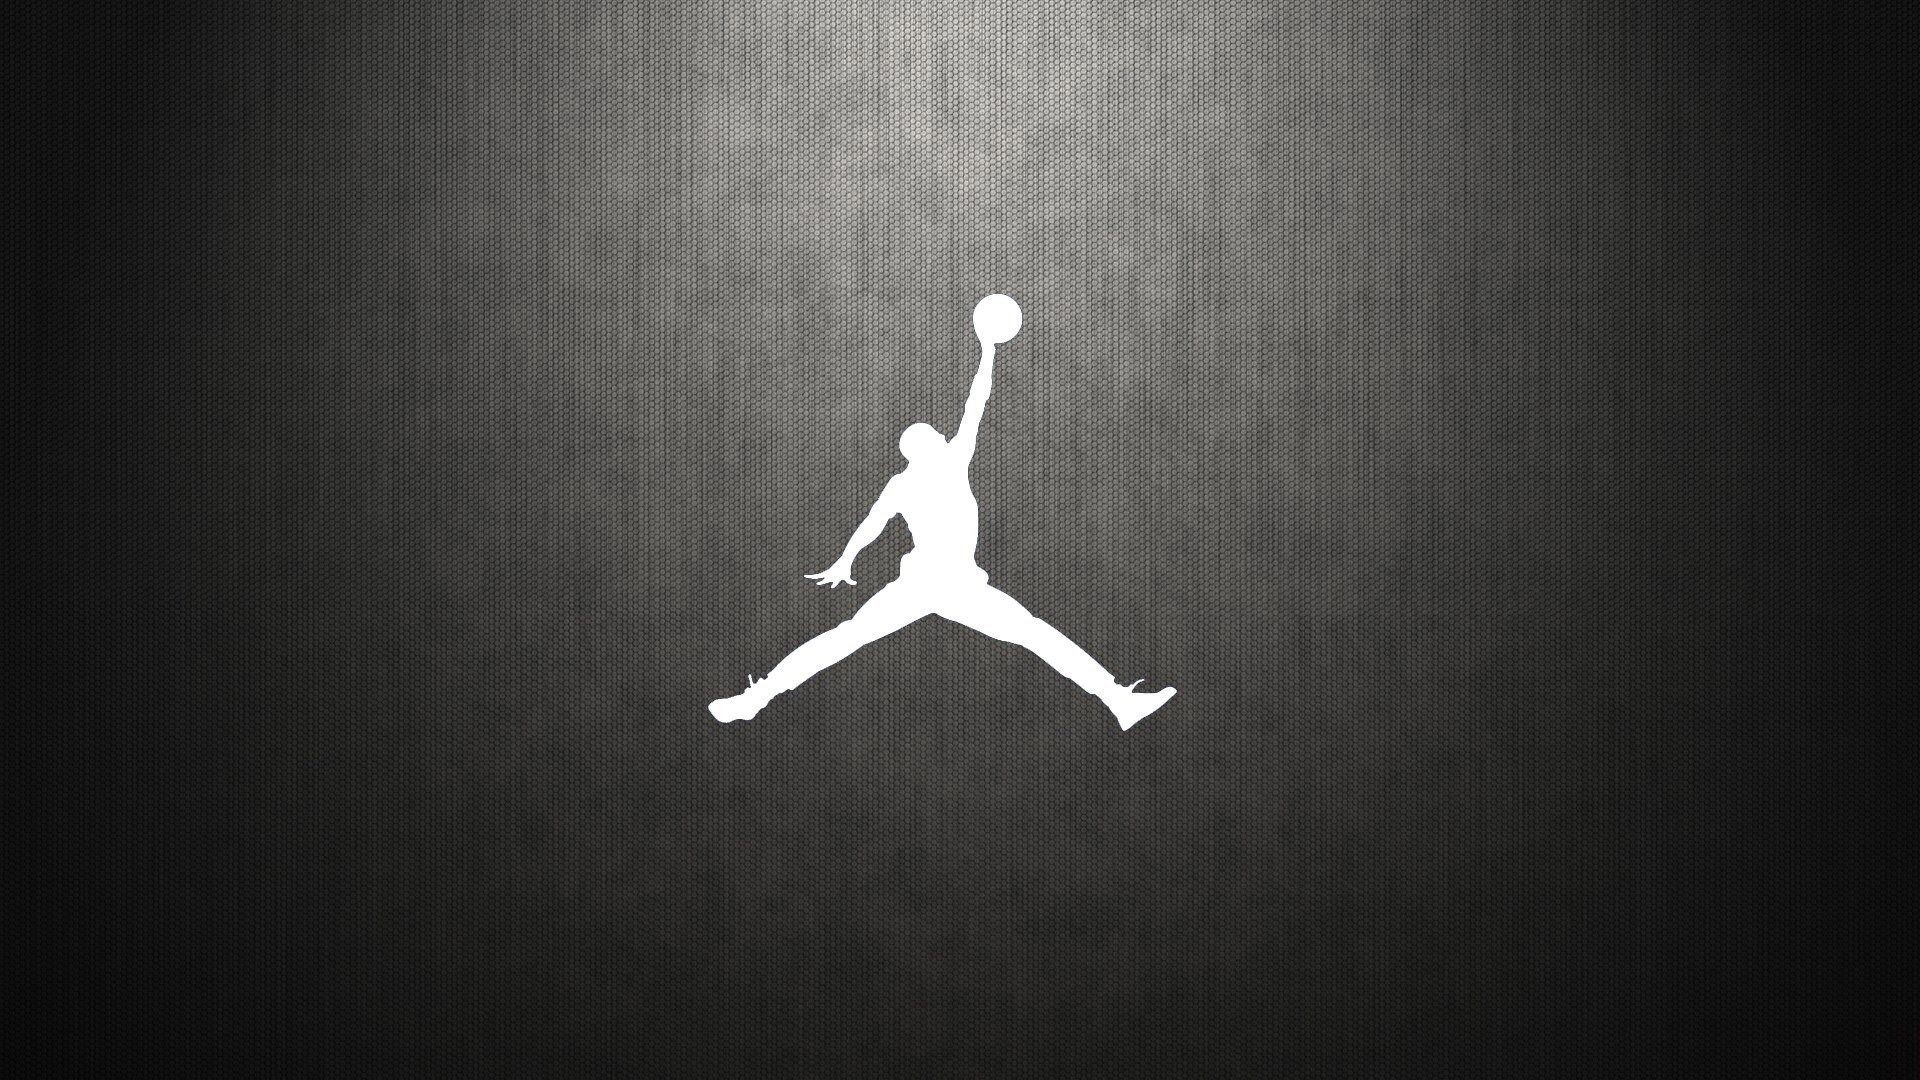 Jordan Shoes Wallpaper Logo Wallpaper Hd Nike Wallpaper Iphone Wallpaper Backgrounds White